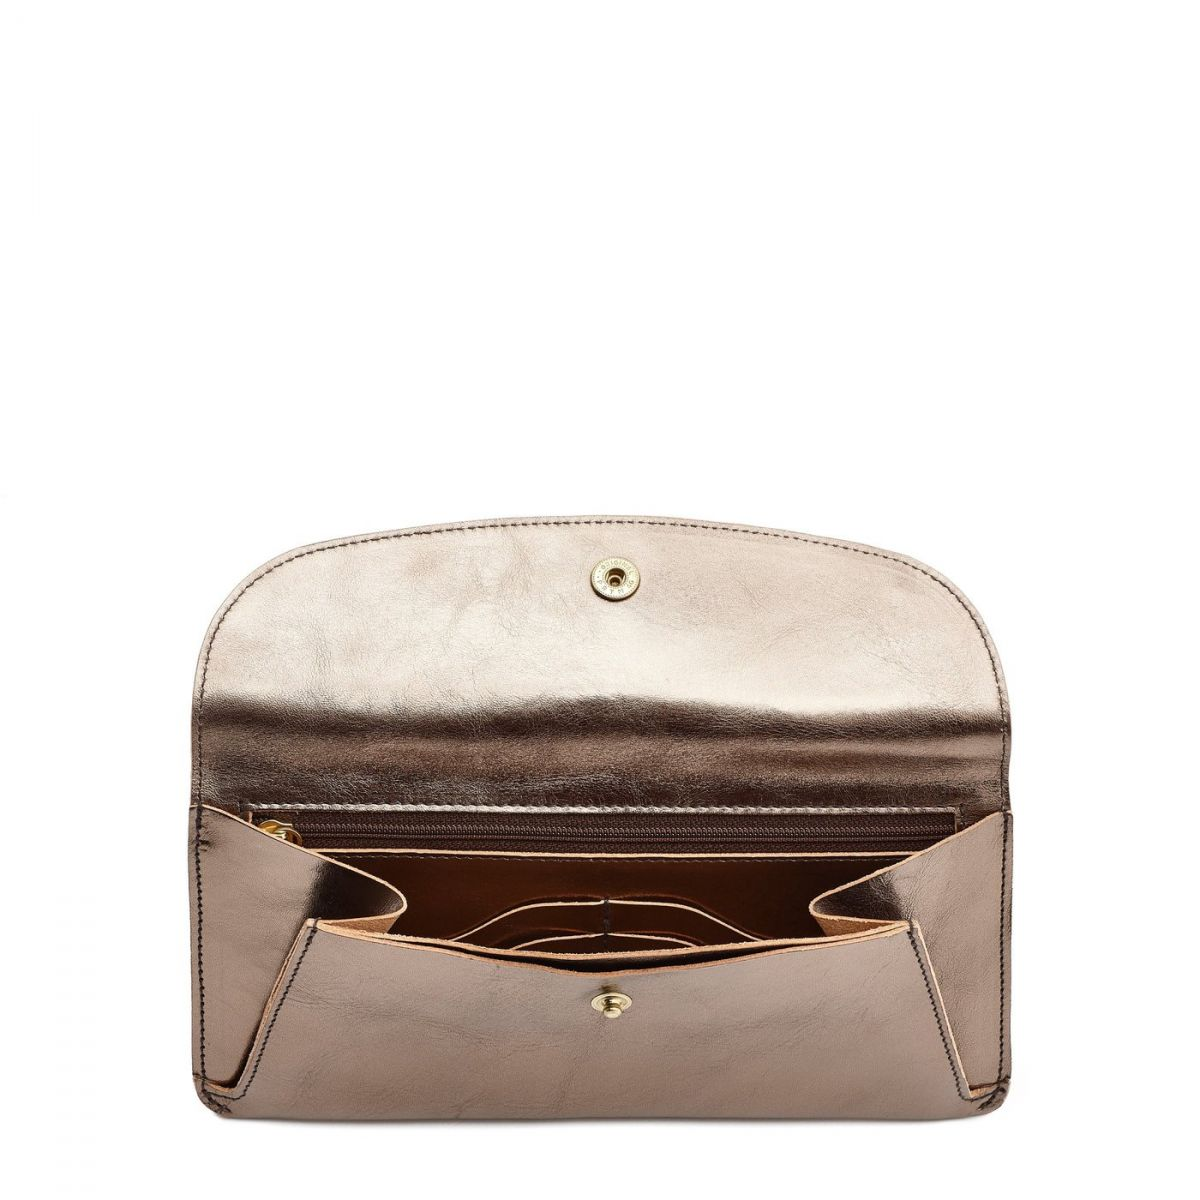 Women's Wallet  in Metallic Leather SMW116 color Metallic Bronze | Details